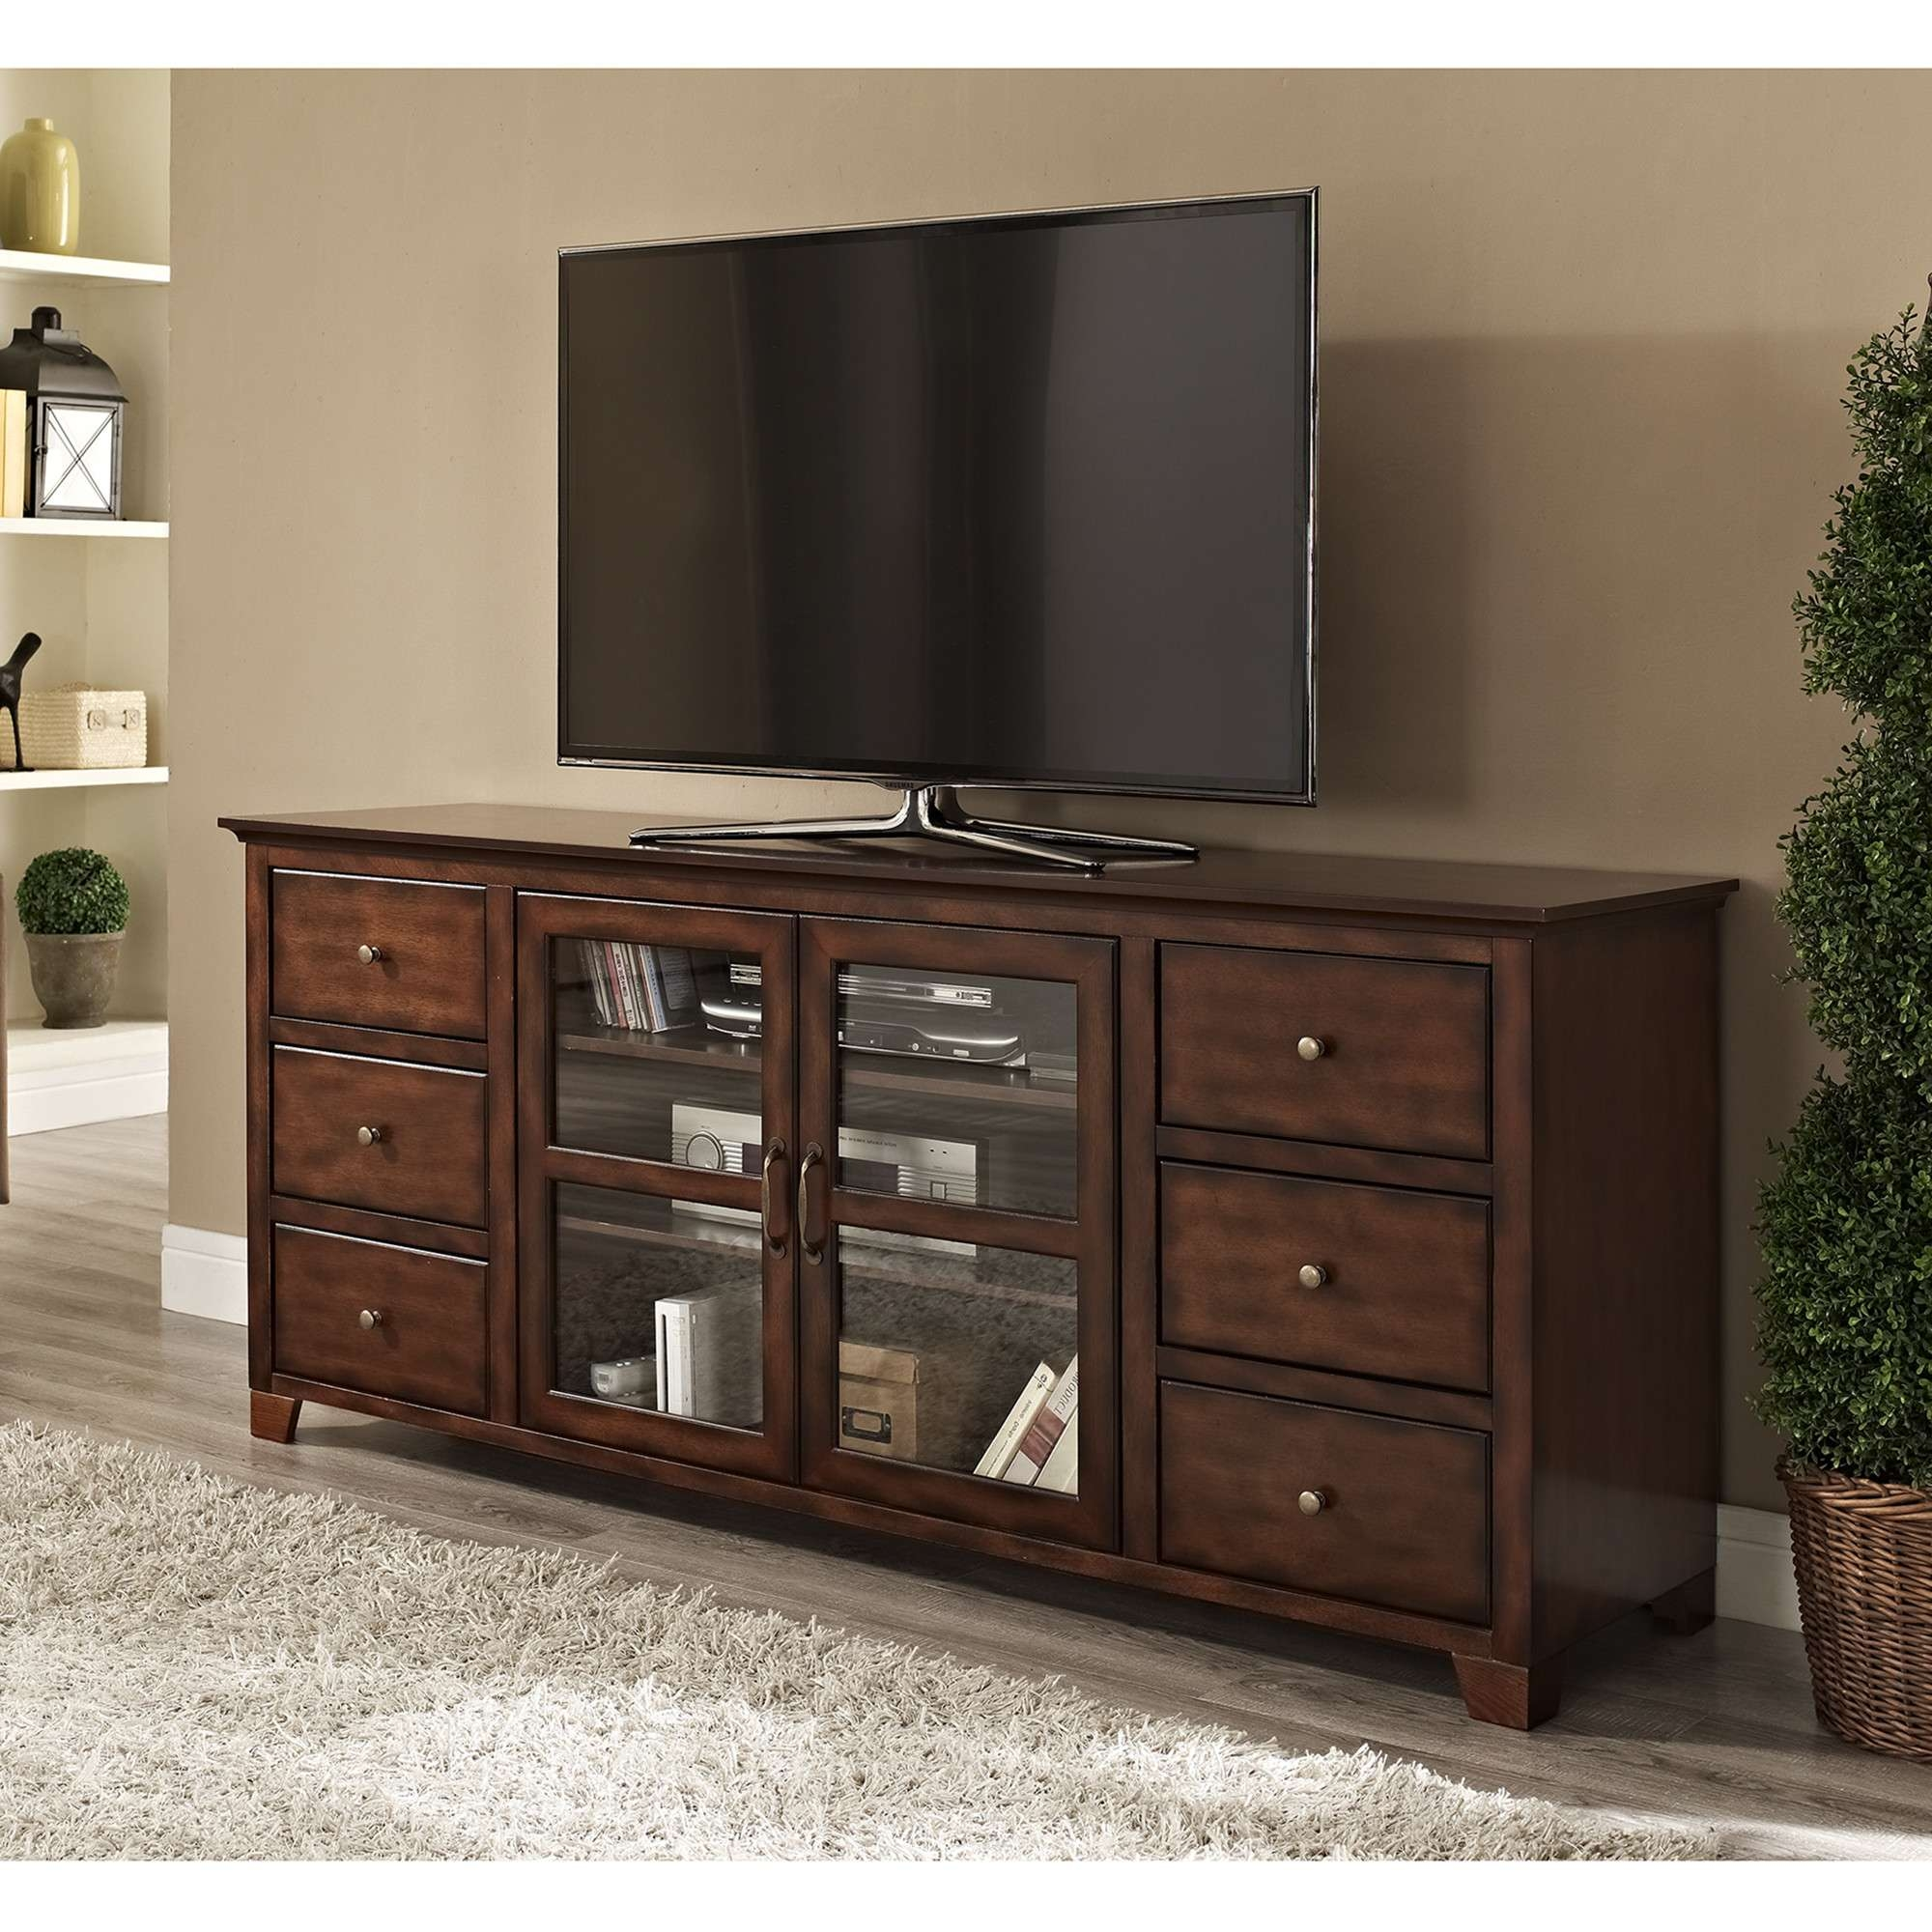 Regaling Doors To Hide Tv Home Furniture Ideas And Cargo Large Tv Inside Tv Cabinets With Drawers (View 13 of 20)